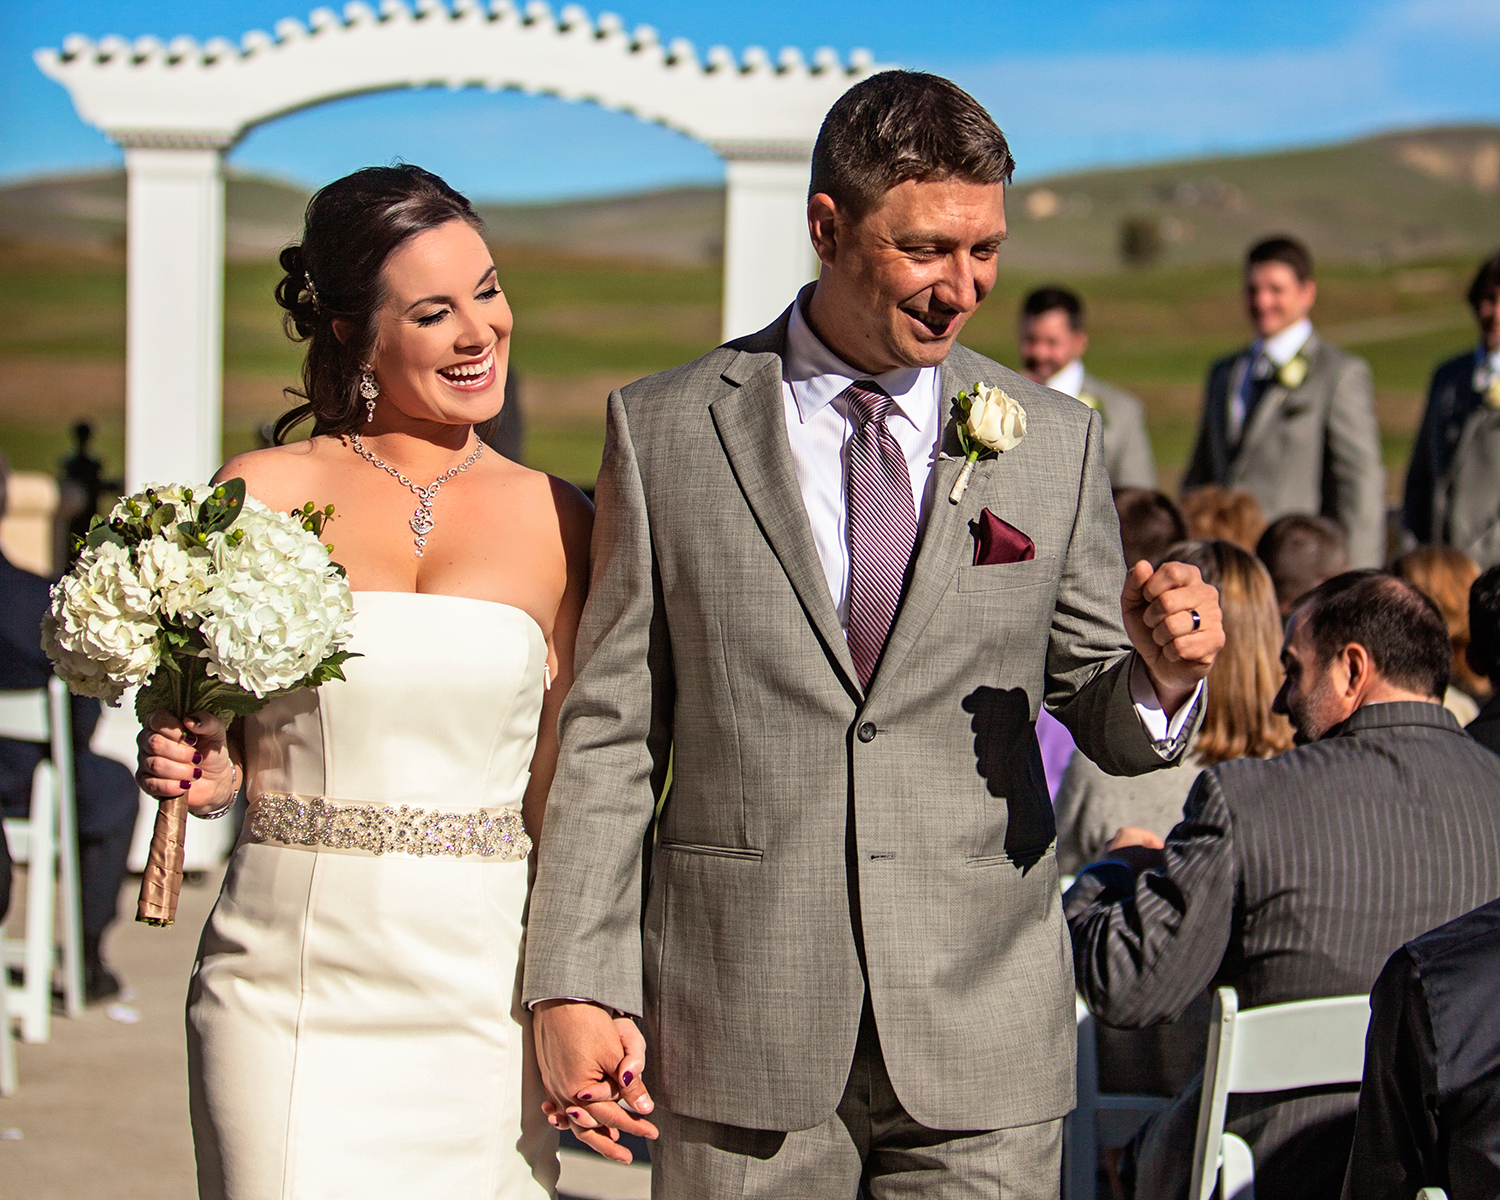 Dena_Rooney_Wedding_Photographer_Poppy_Ridge_008.jpg